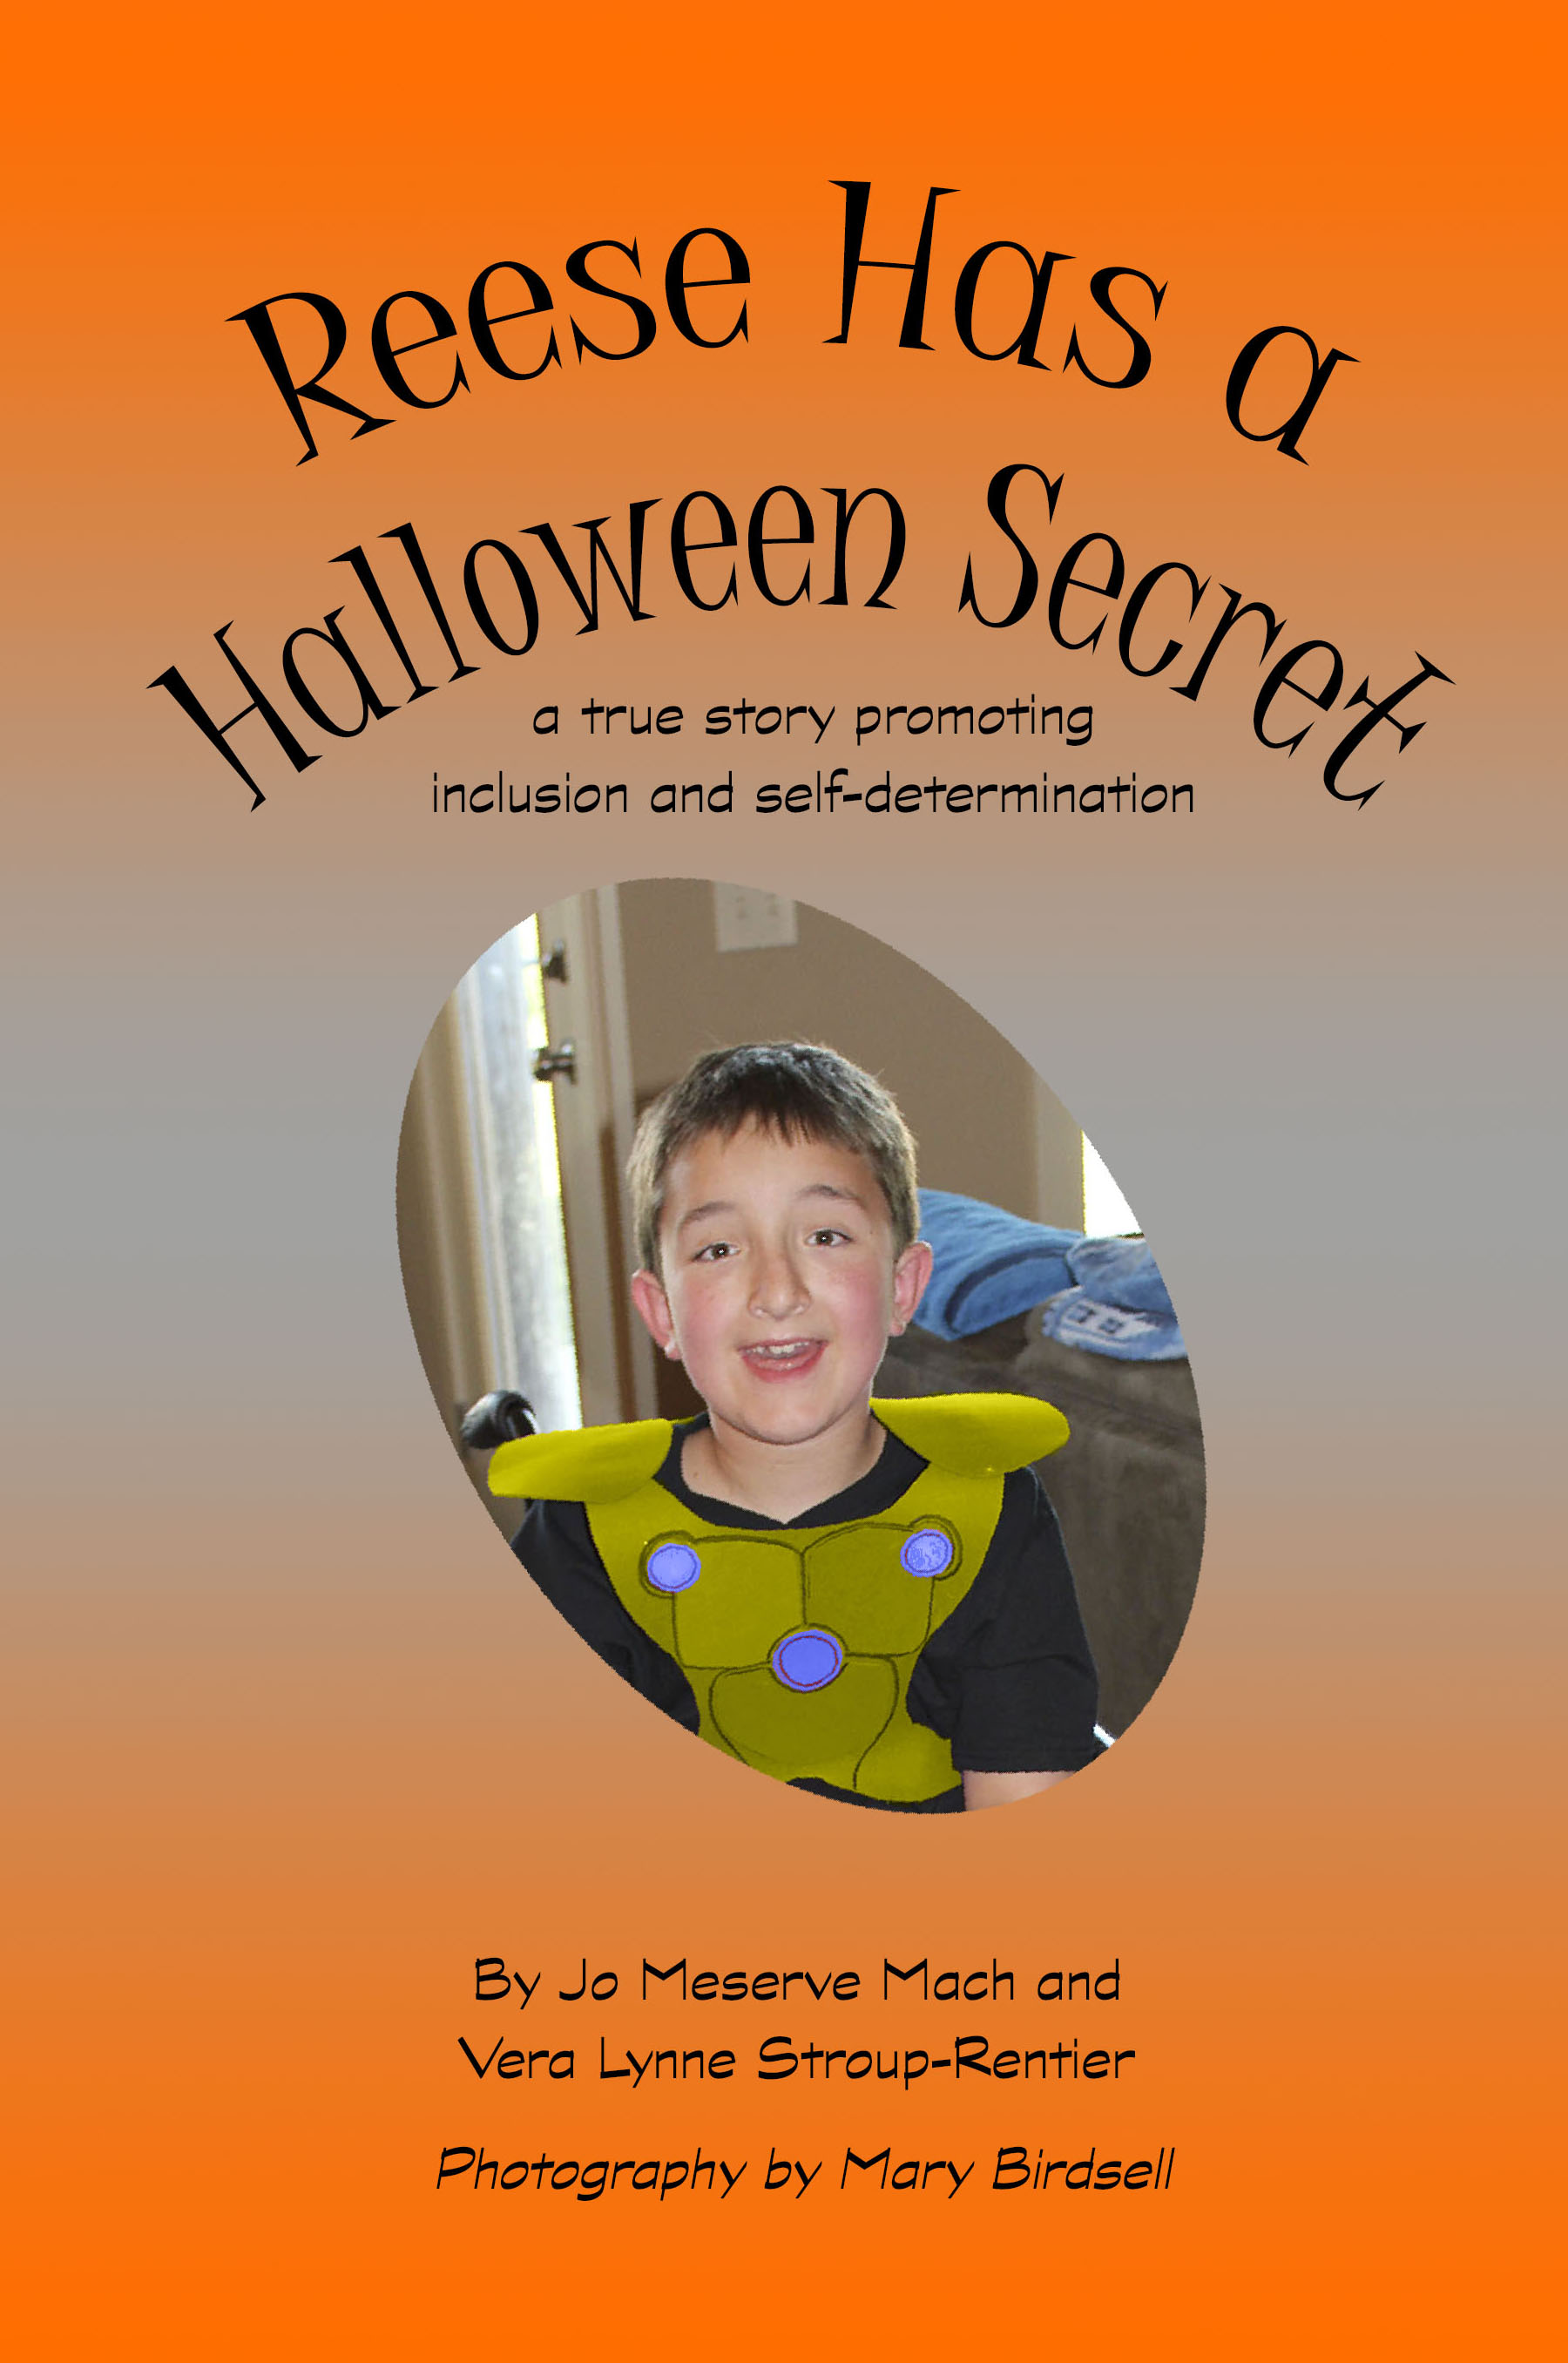 reese has a halloween secret a true story promoting inclusion and self determination